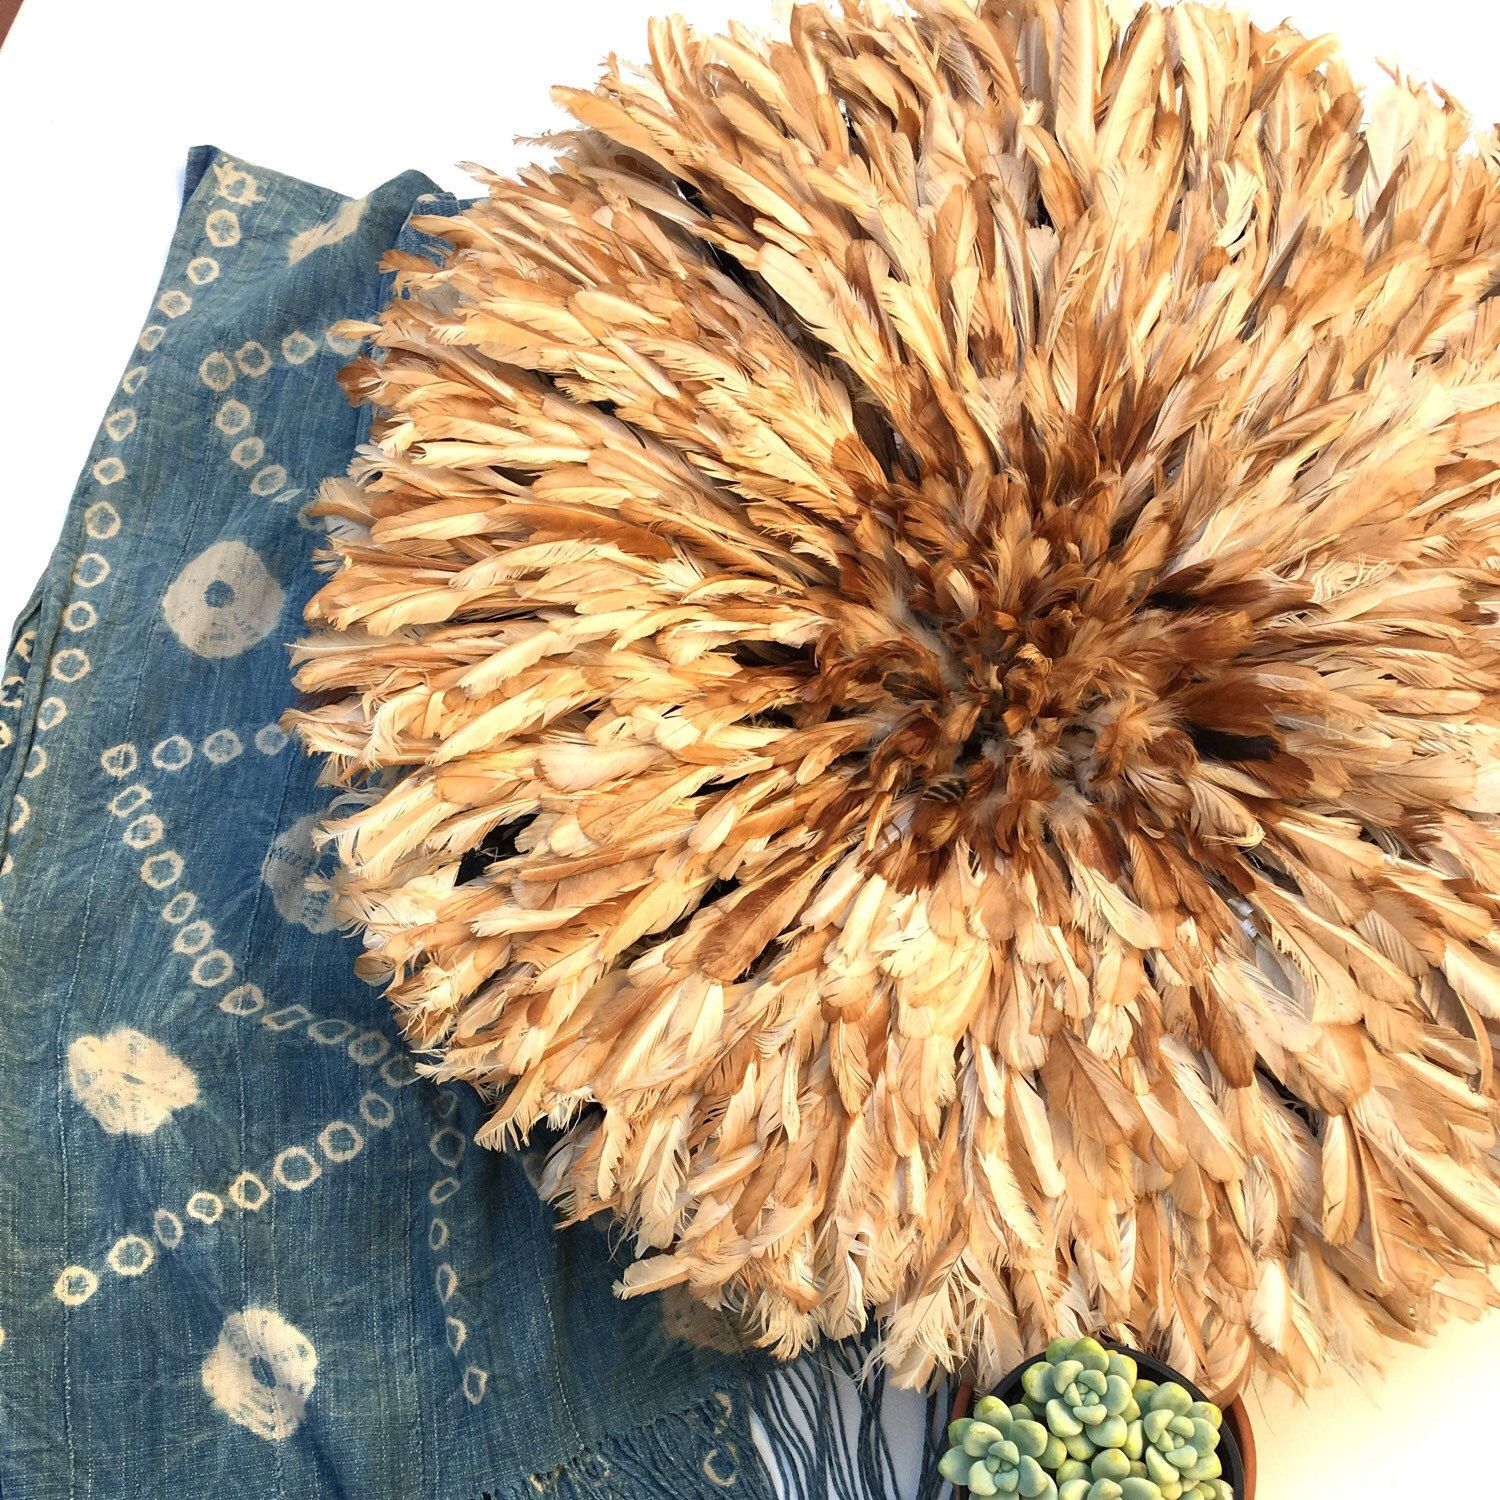 Juju feather hat from Africa just listed! Boho Wall Decor, Large size